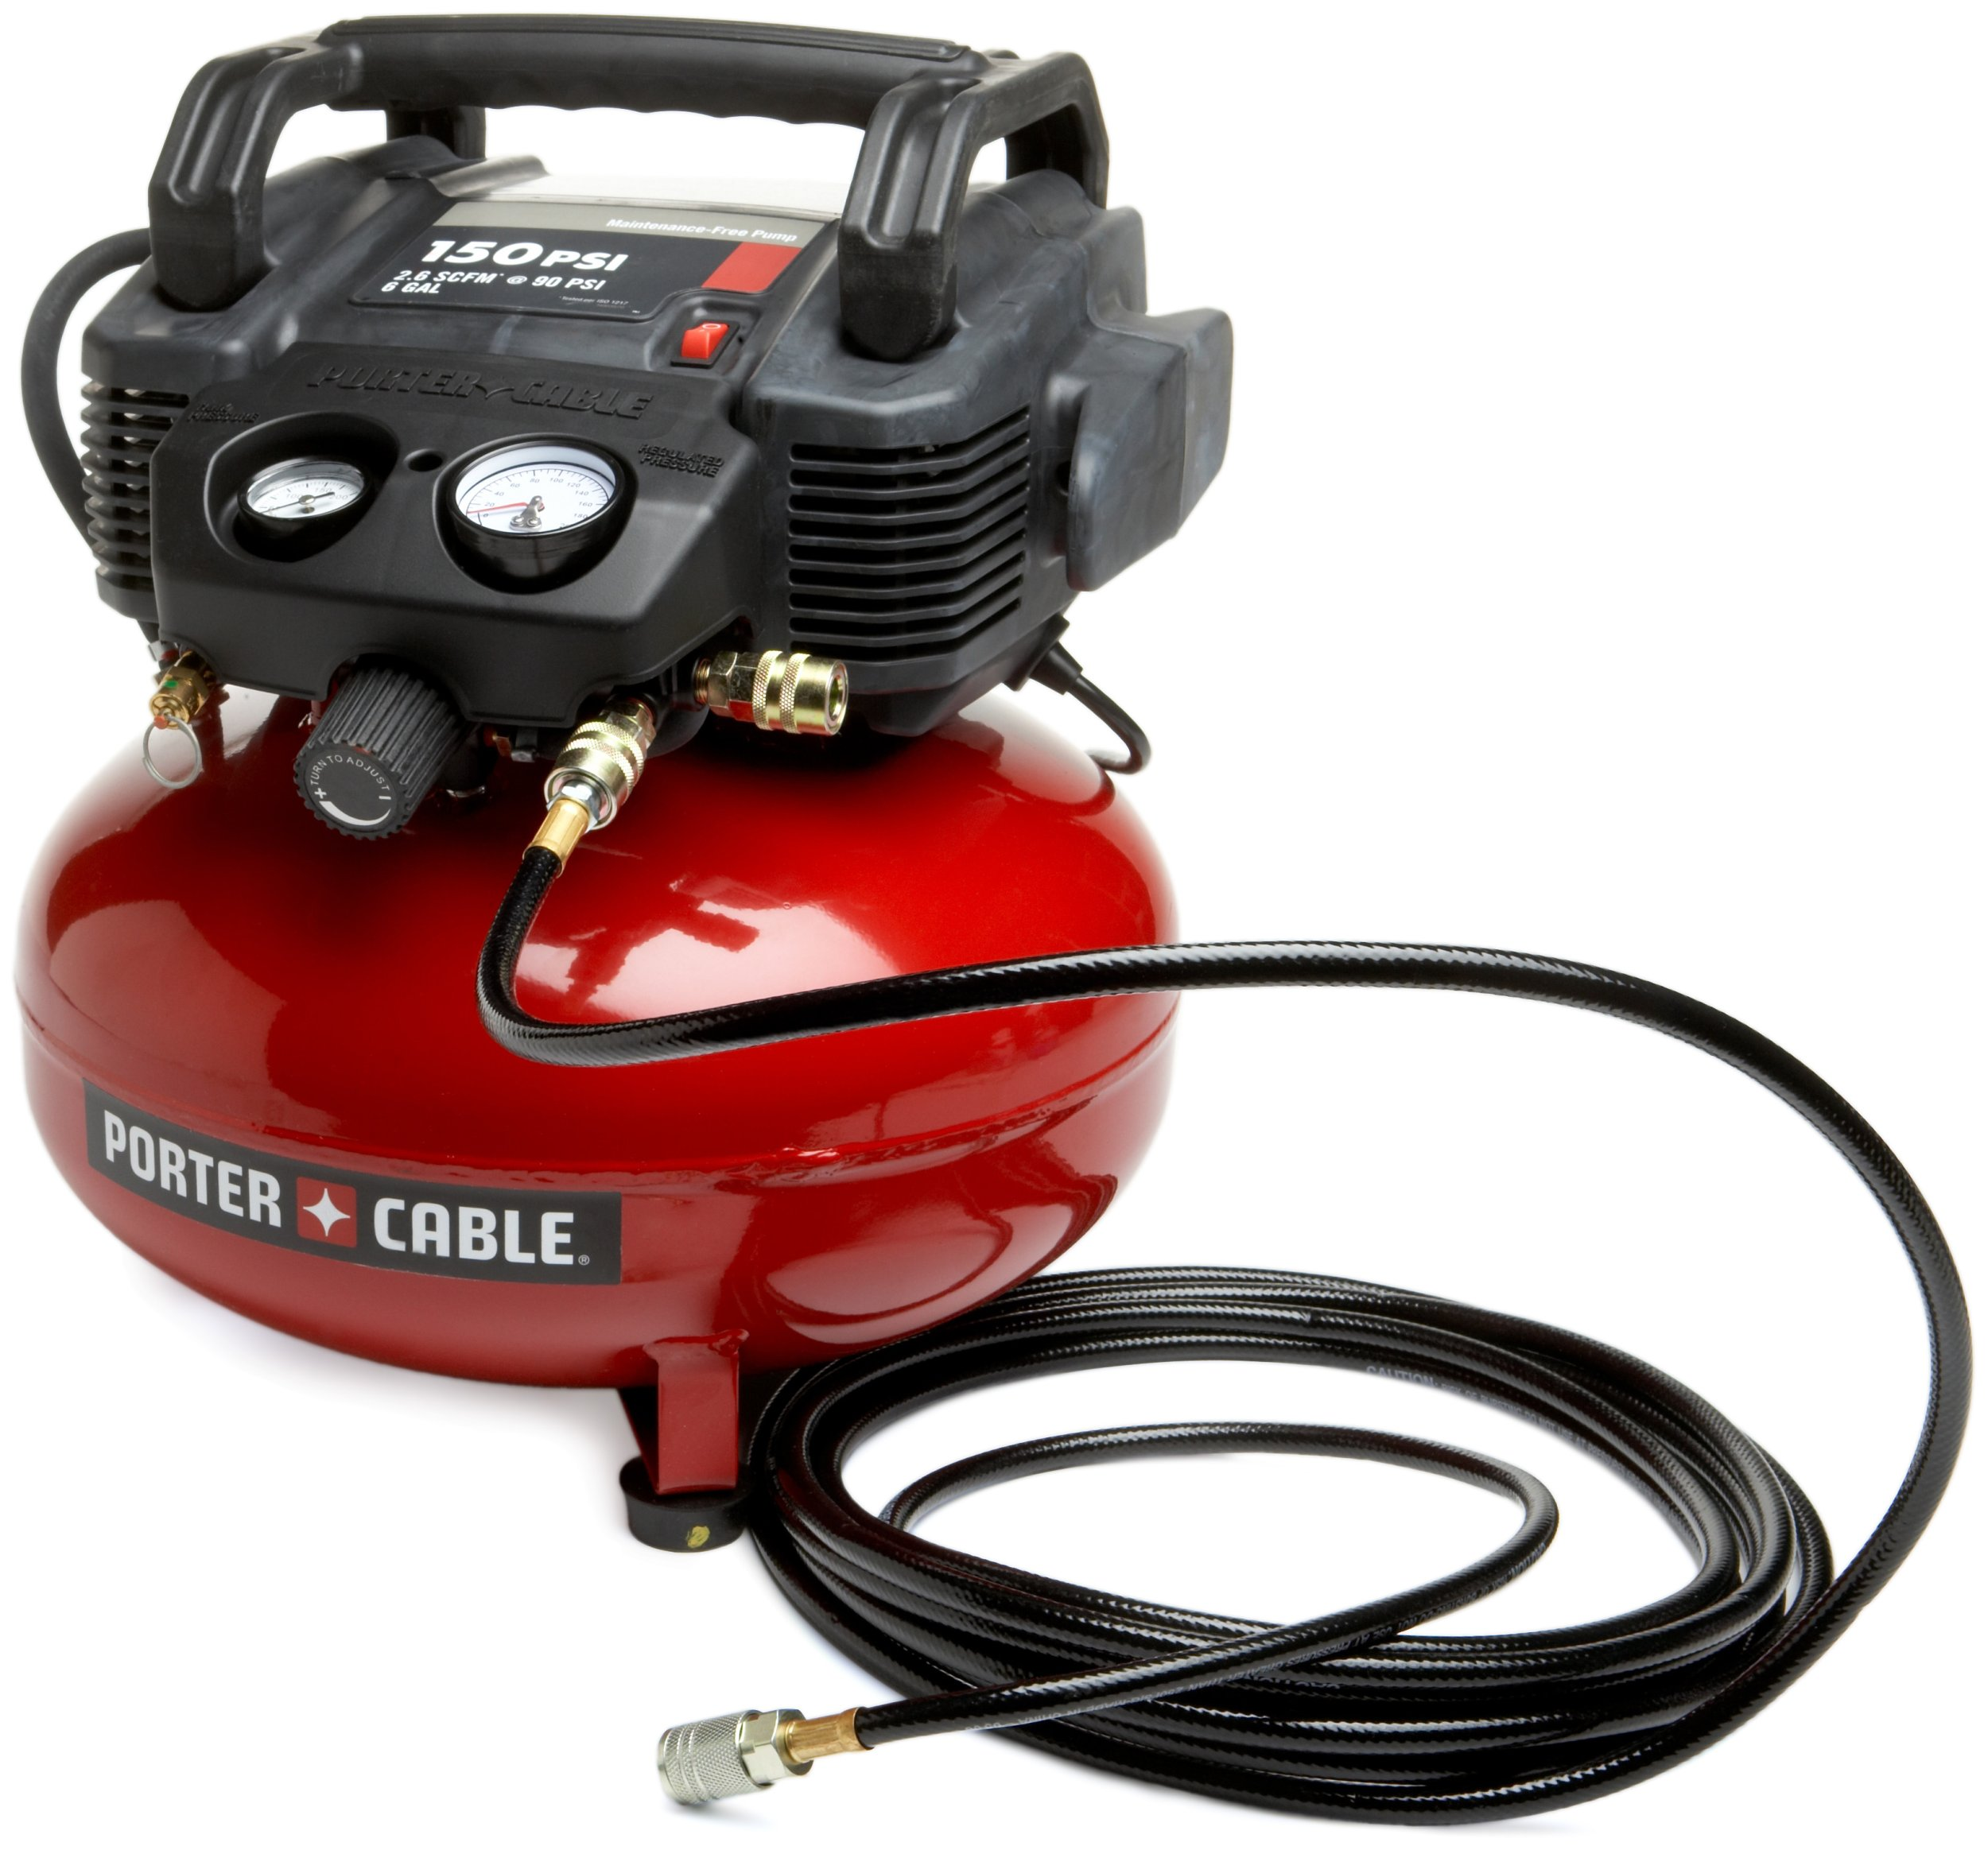 PORTER-CABLE C2002-WK Oil-Free UMC Pancake Compressor with 13-Piece Accessory Kit by PORTER-CABLE (Image #2)